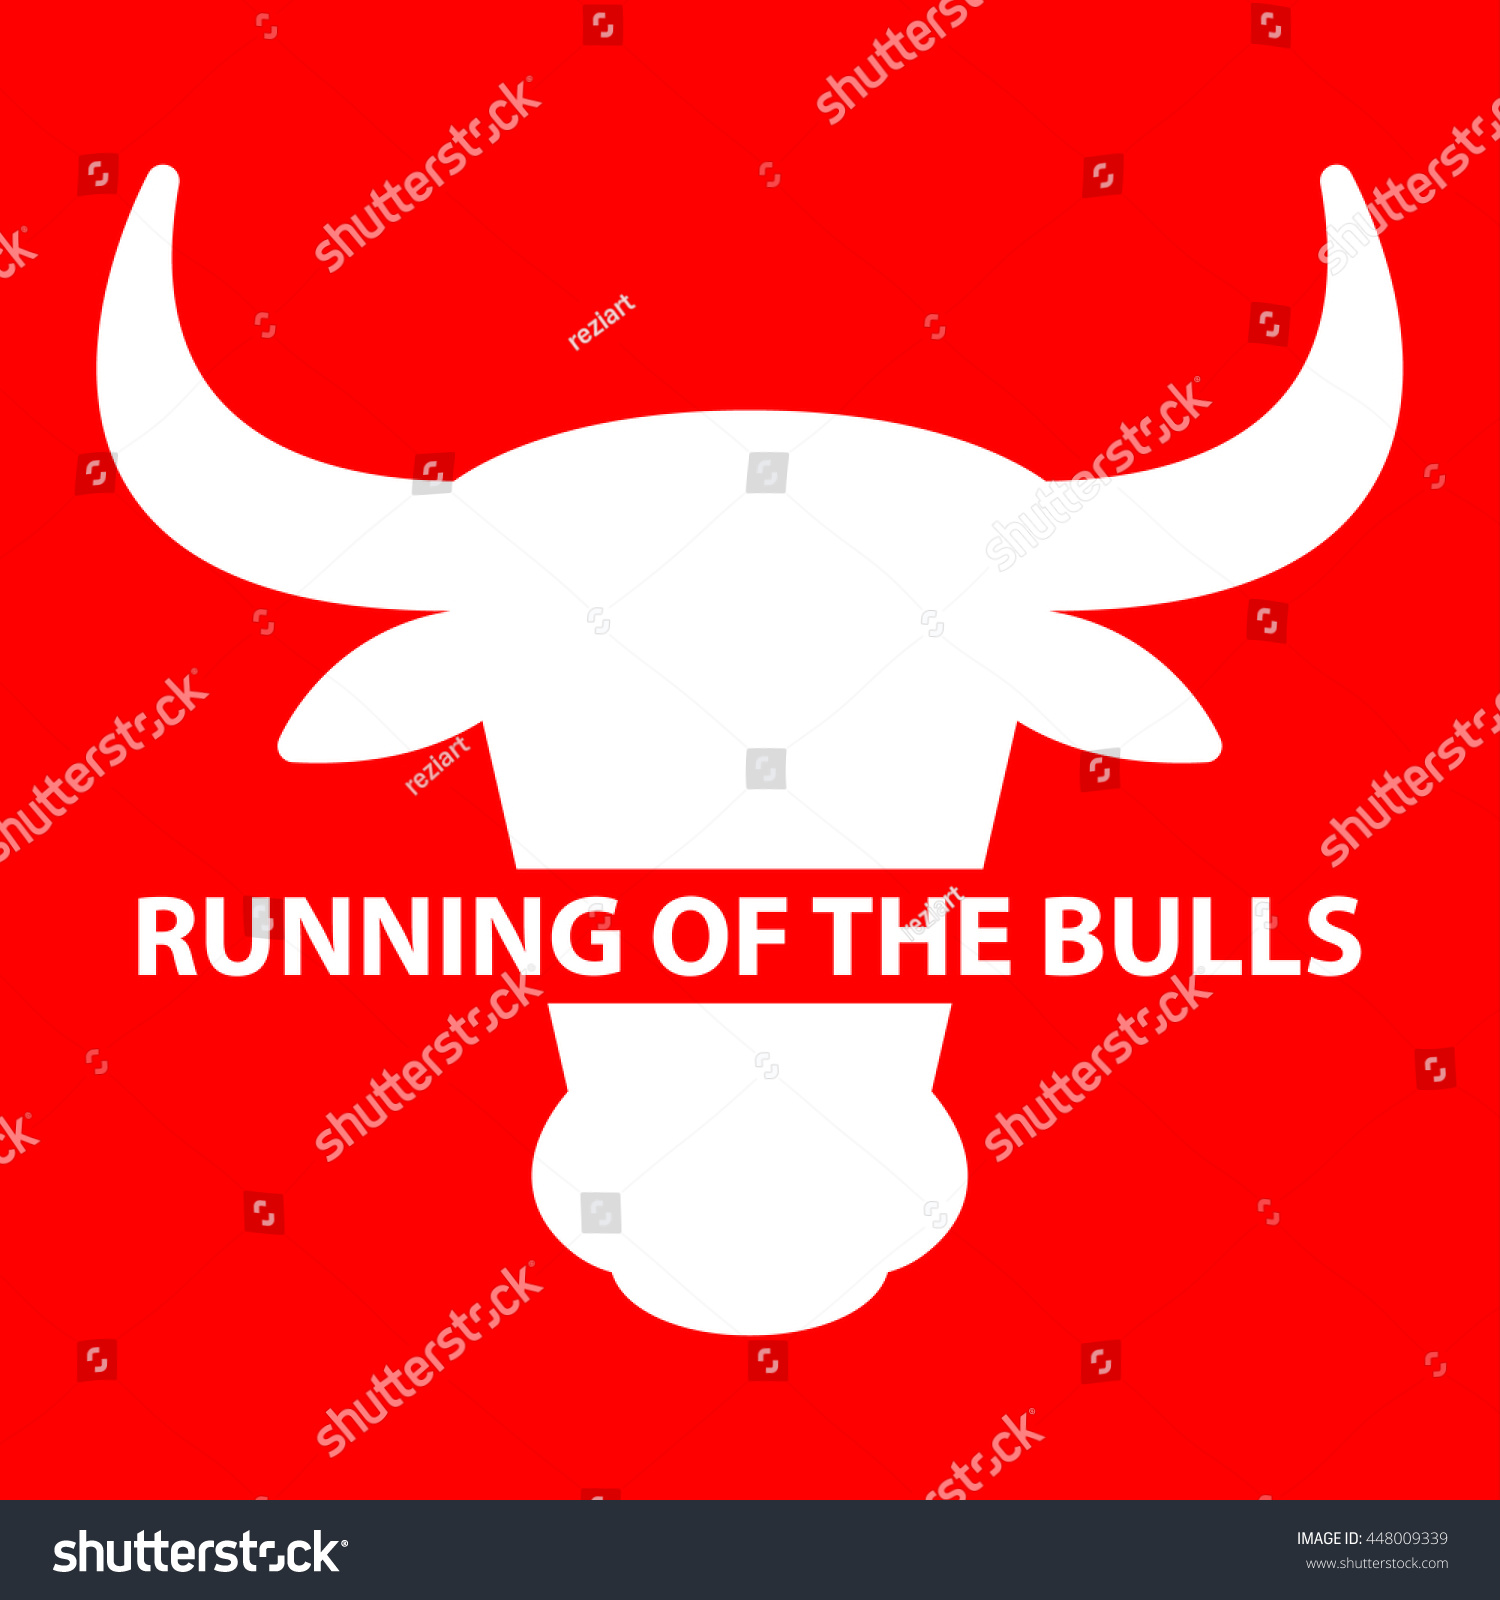 Festival Running Of The Bulls In Spain Design Illustration Fiesta De San Fermin